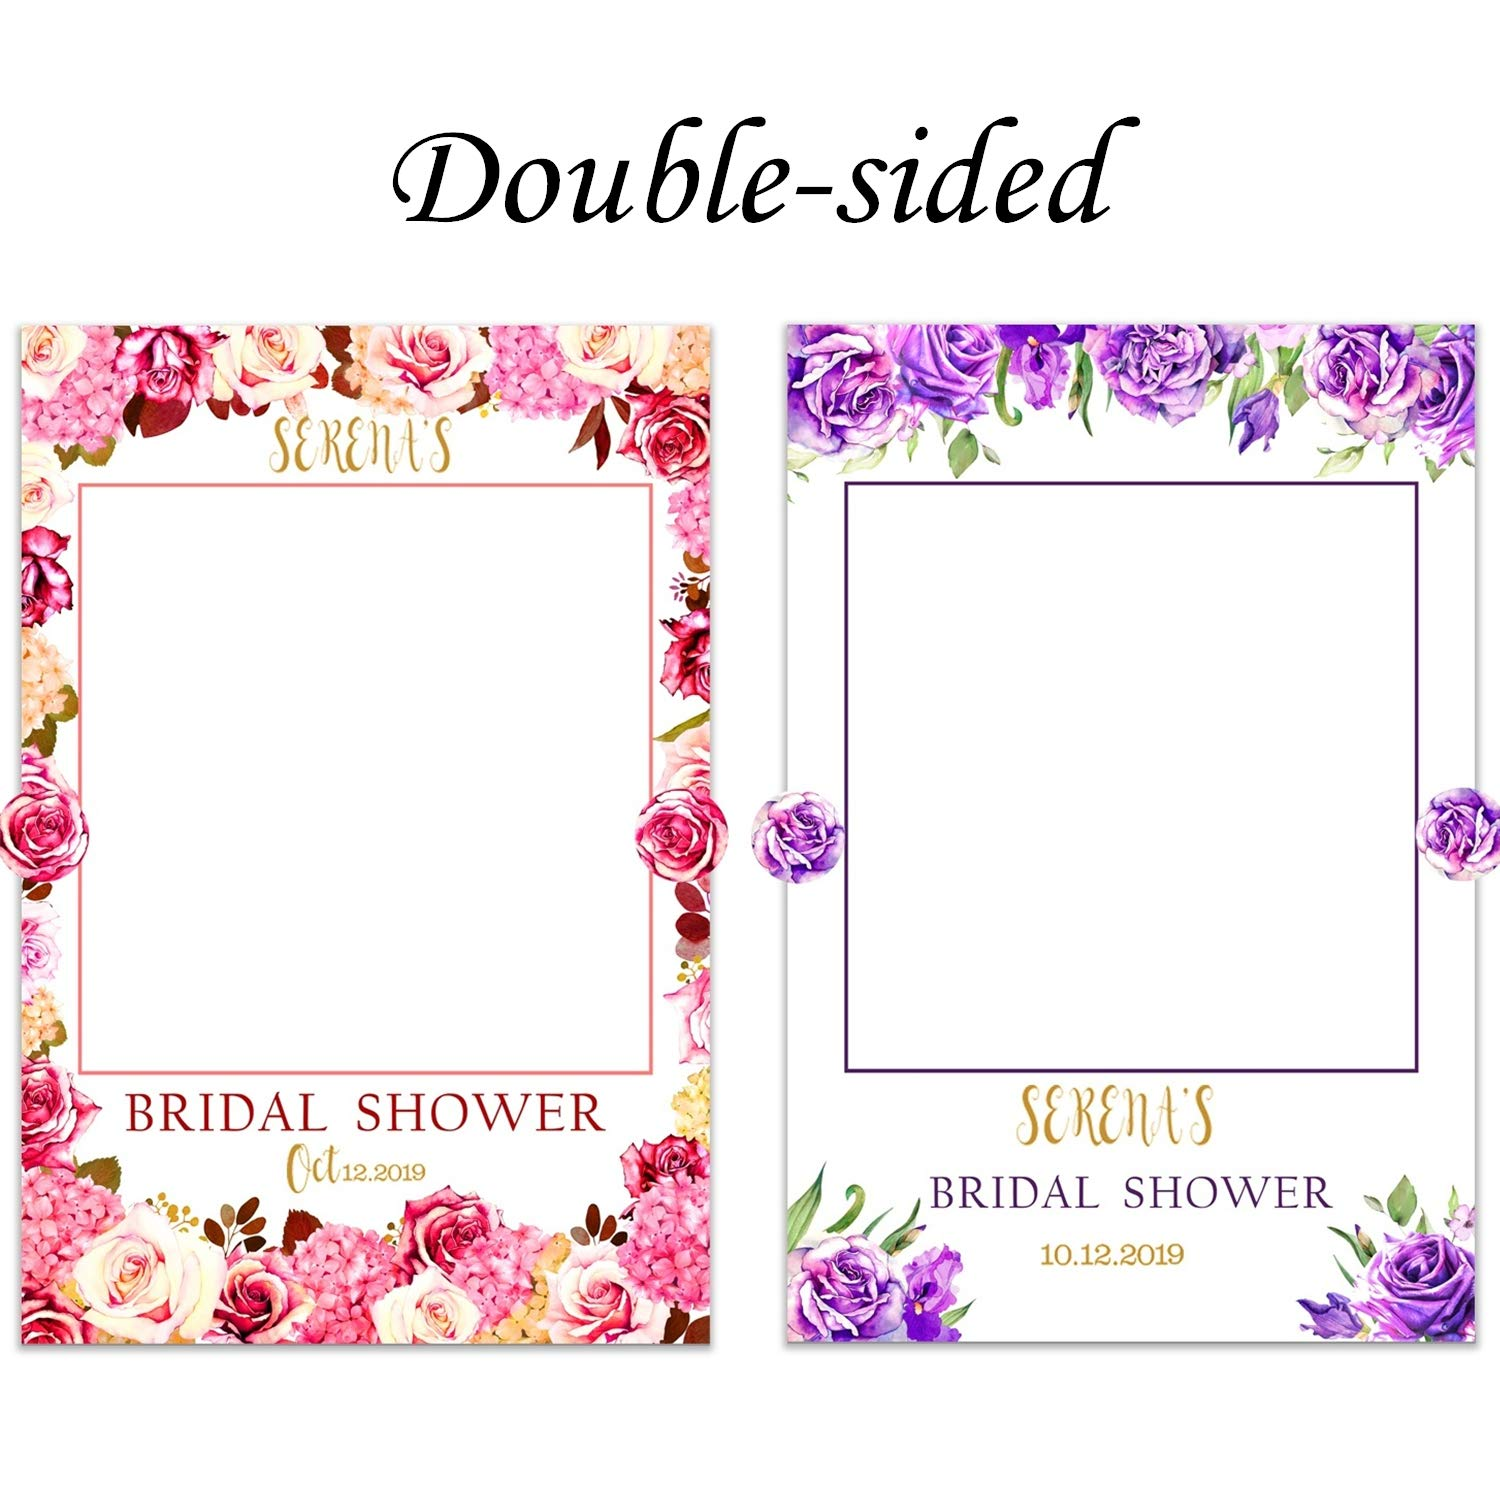 Bridal Shower Photo Booth Frame Party Supplies Double-Sided Rose Flower Bachelorette Photo Props Photobooth Wedding Selfie Personalized Decorations (Rose Flower) by Huray Rayho (Image #1)